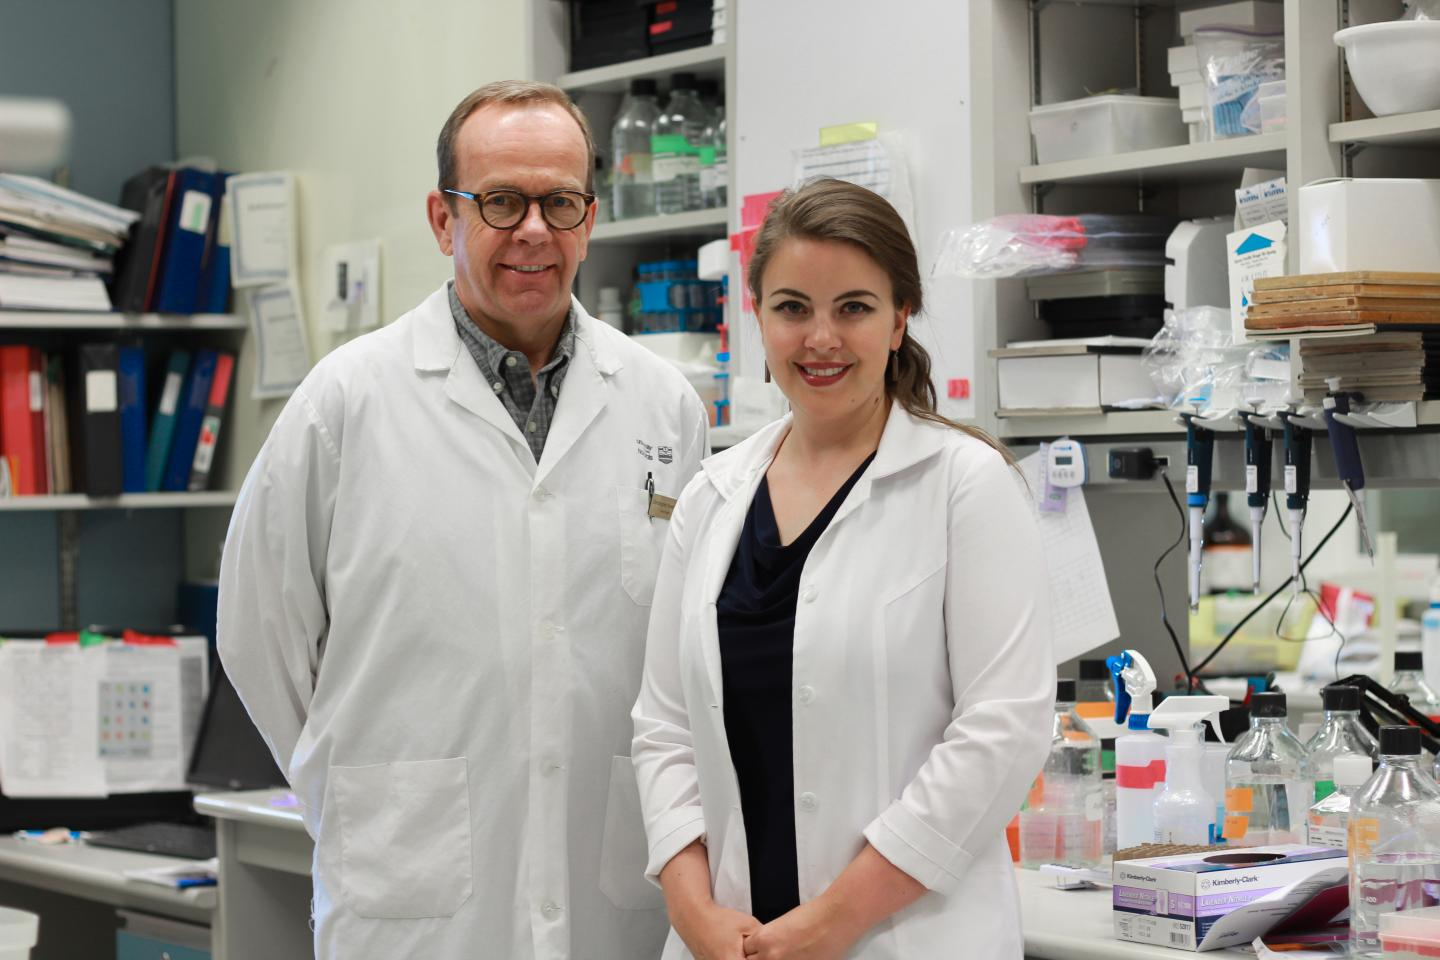 Christopher Power and Brienne McKenzie, University of Alberta Faculty of Medicine & Dentistry